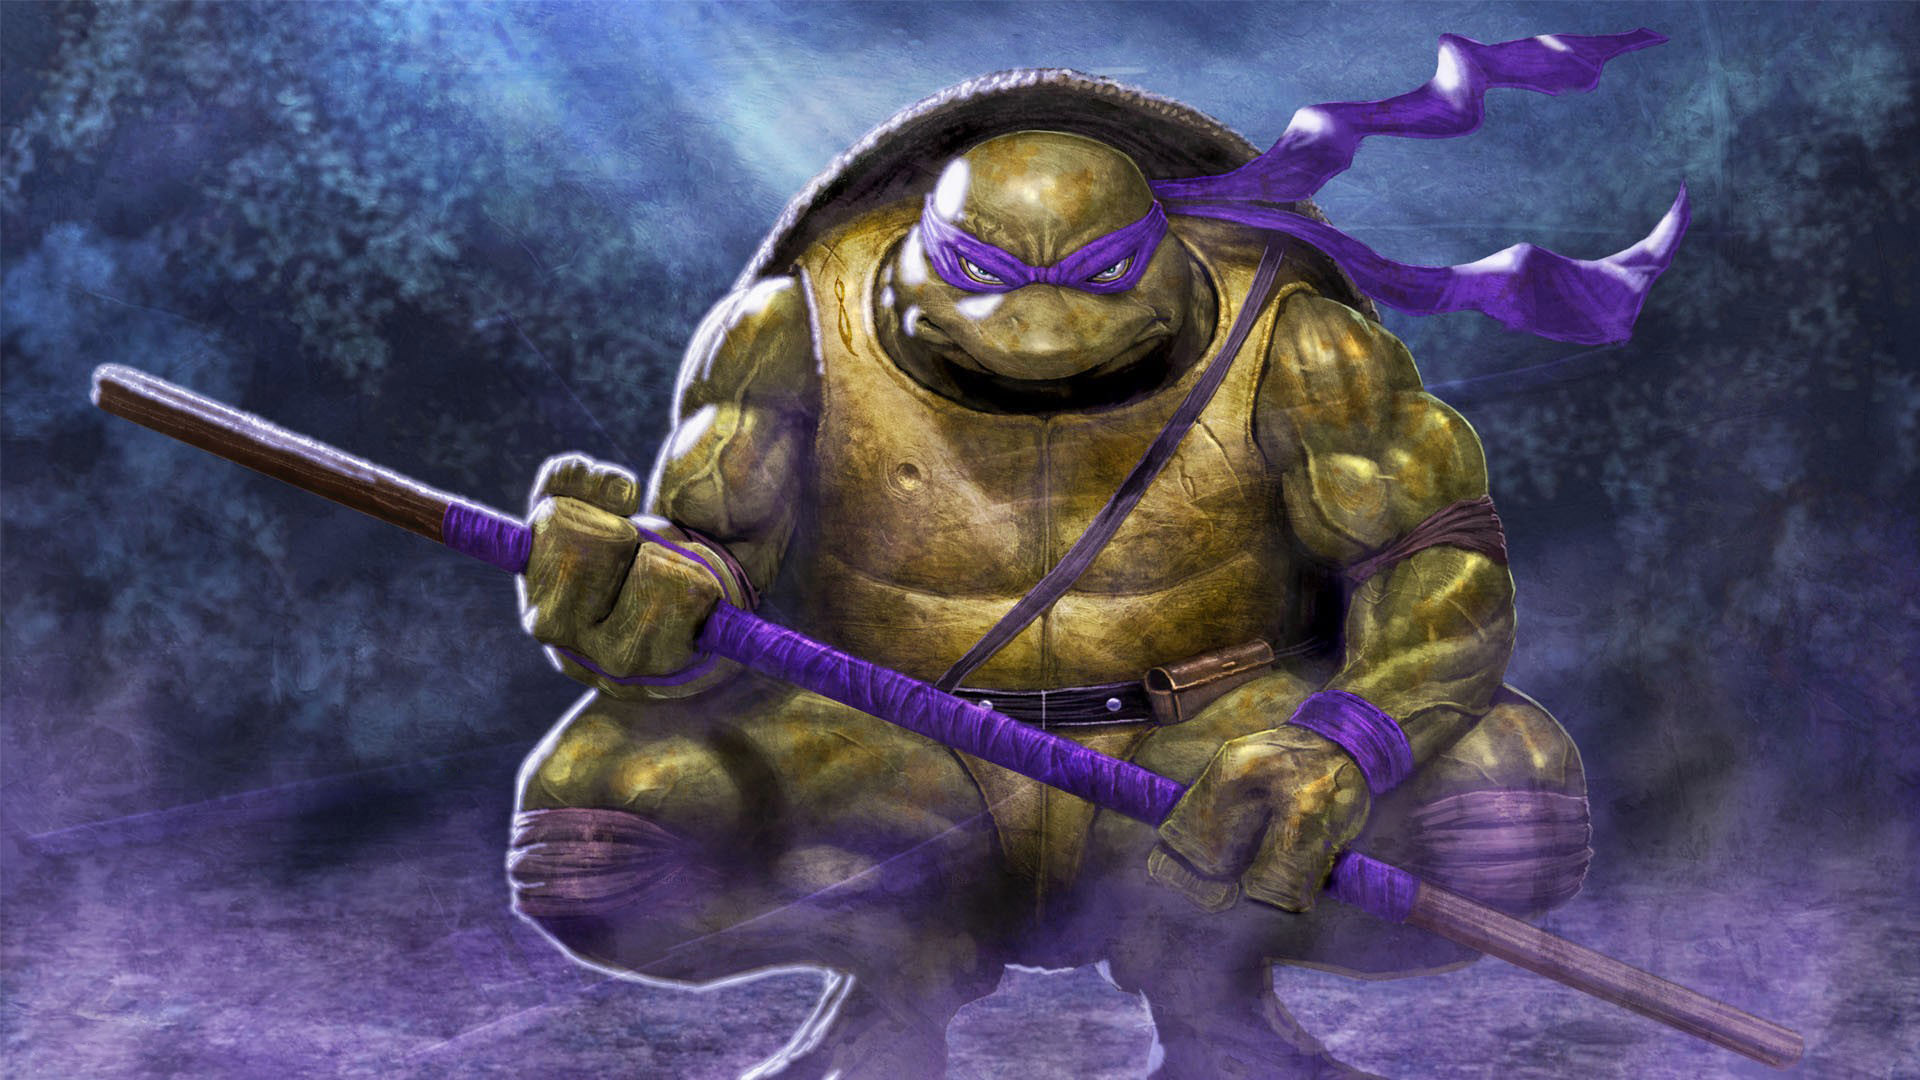 Ninja Turtles Wallpapers High Quality Download Free